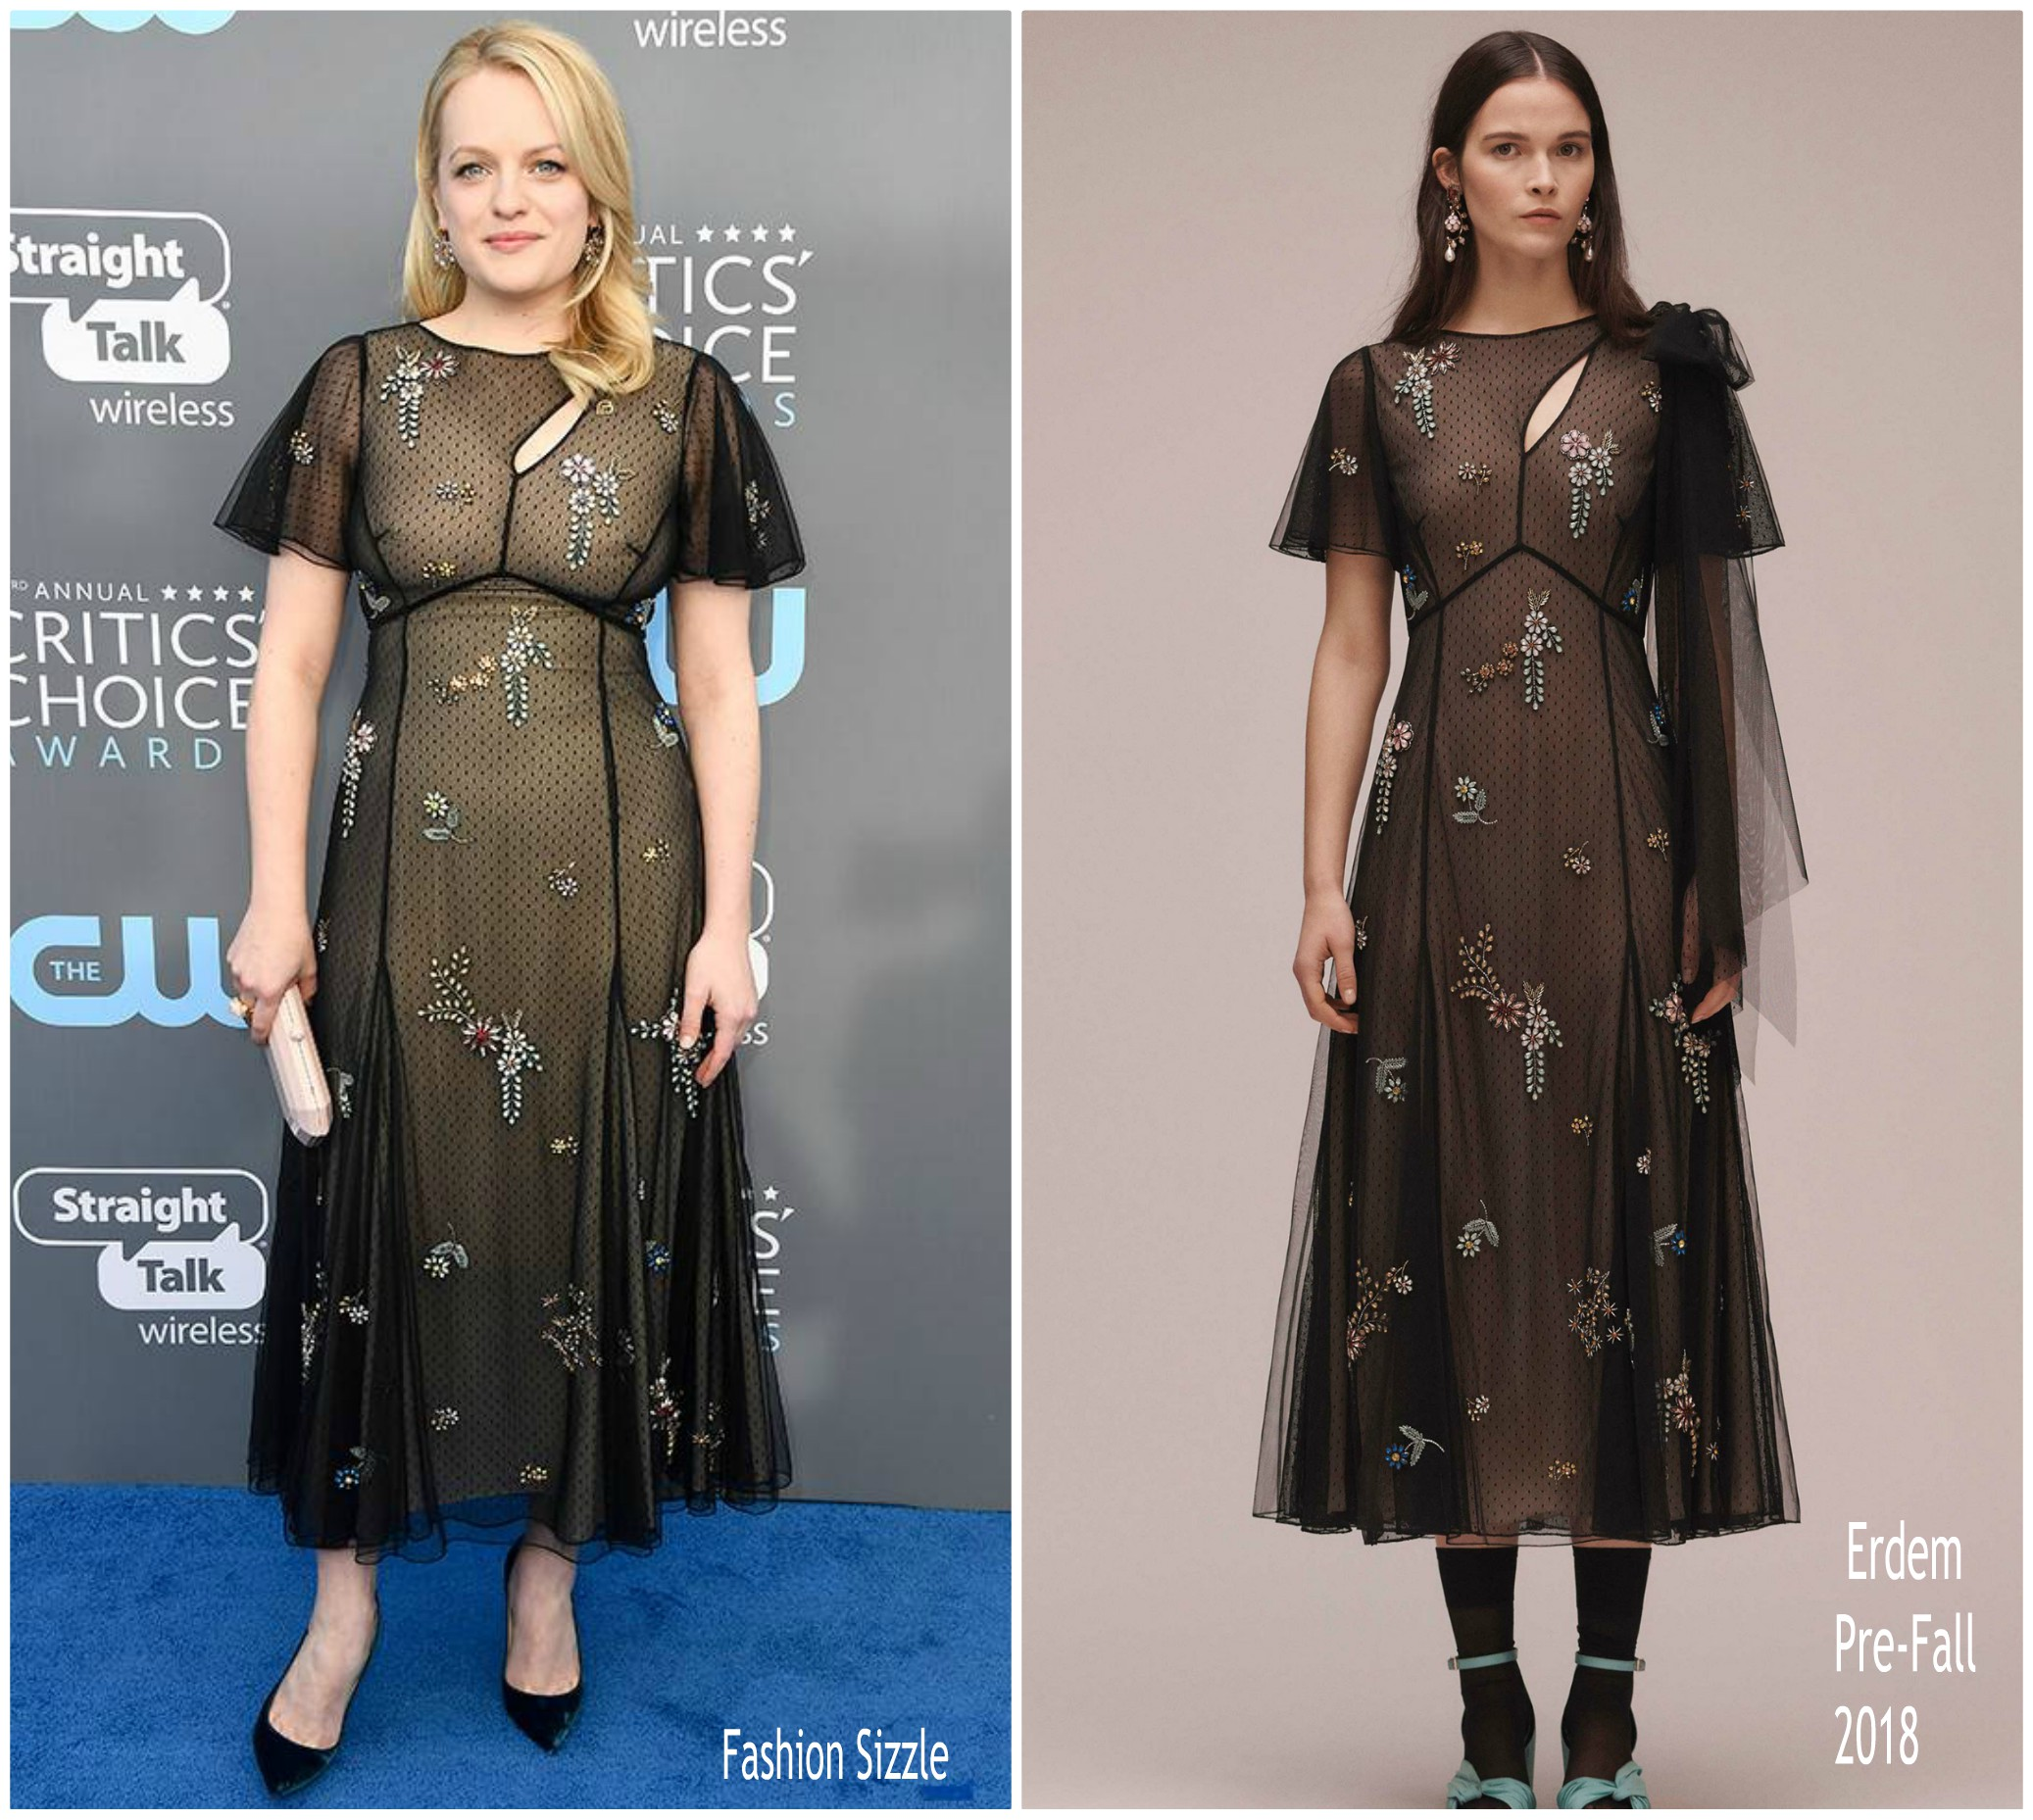 elisabeth-moss-in-erdem-2018-critics-choice-awards